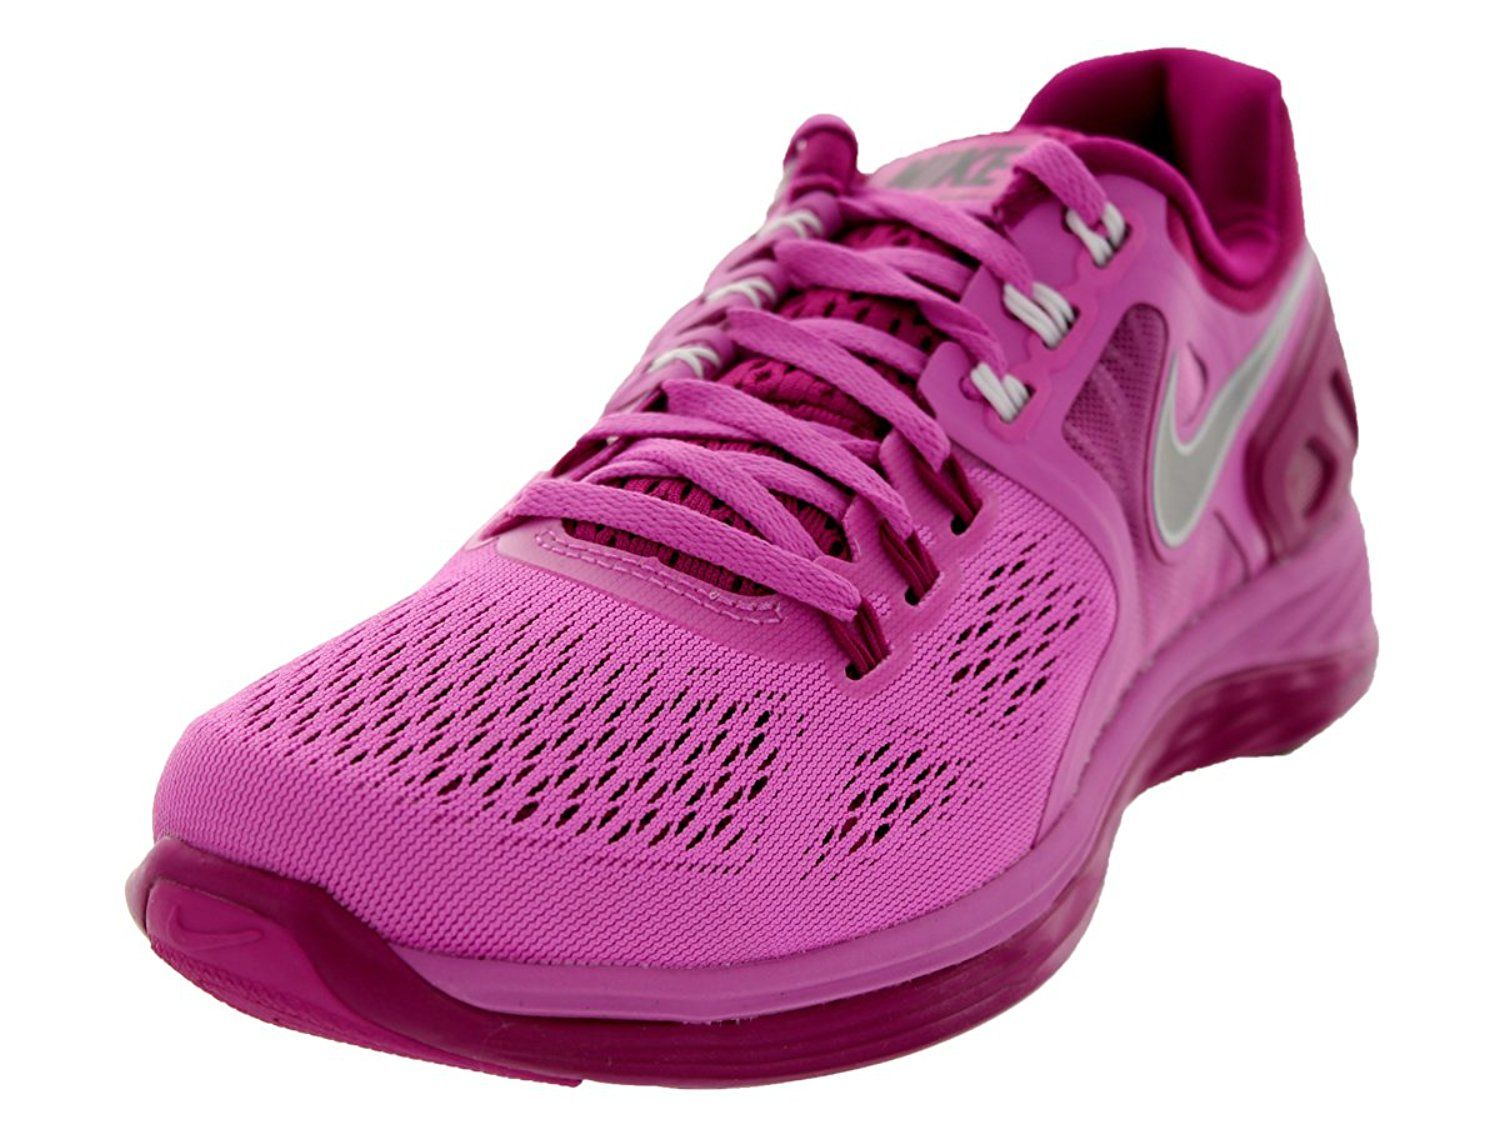 2aa2206a9229 ... switzerland nike womens lunareclipse 4 running shoe you can get more  details here running shoes 28334